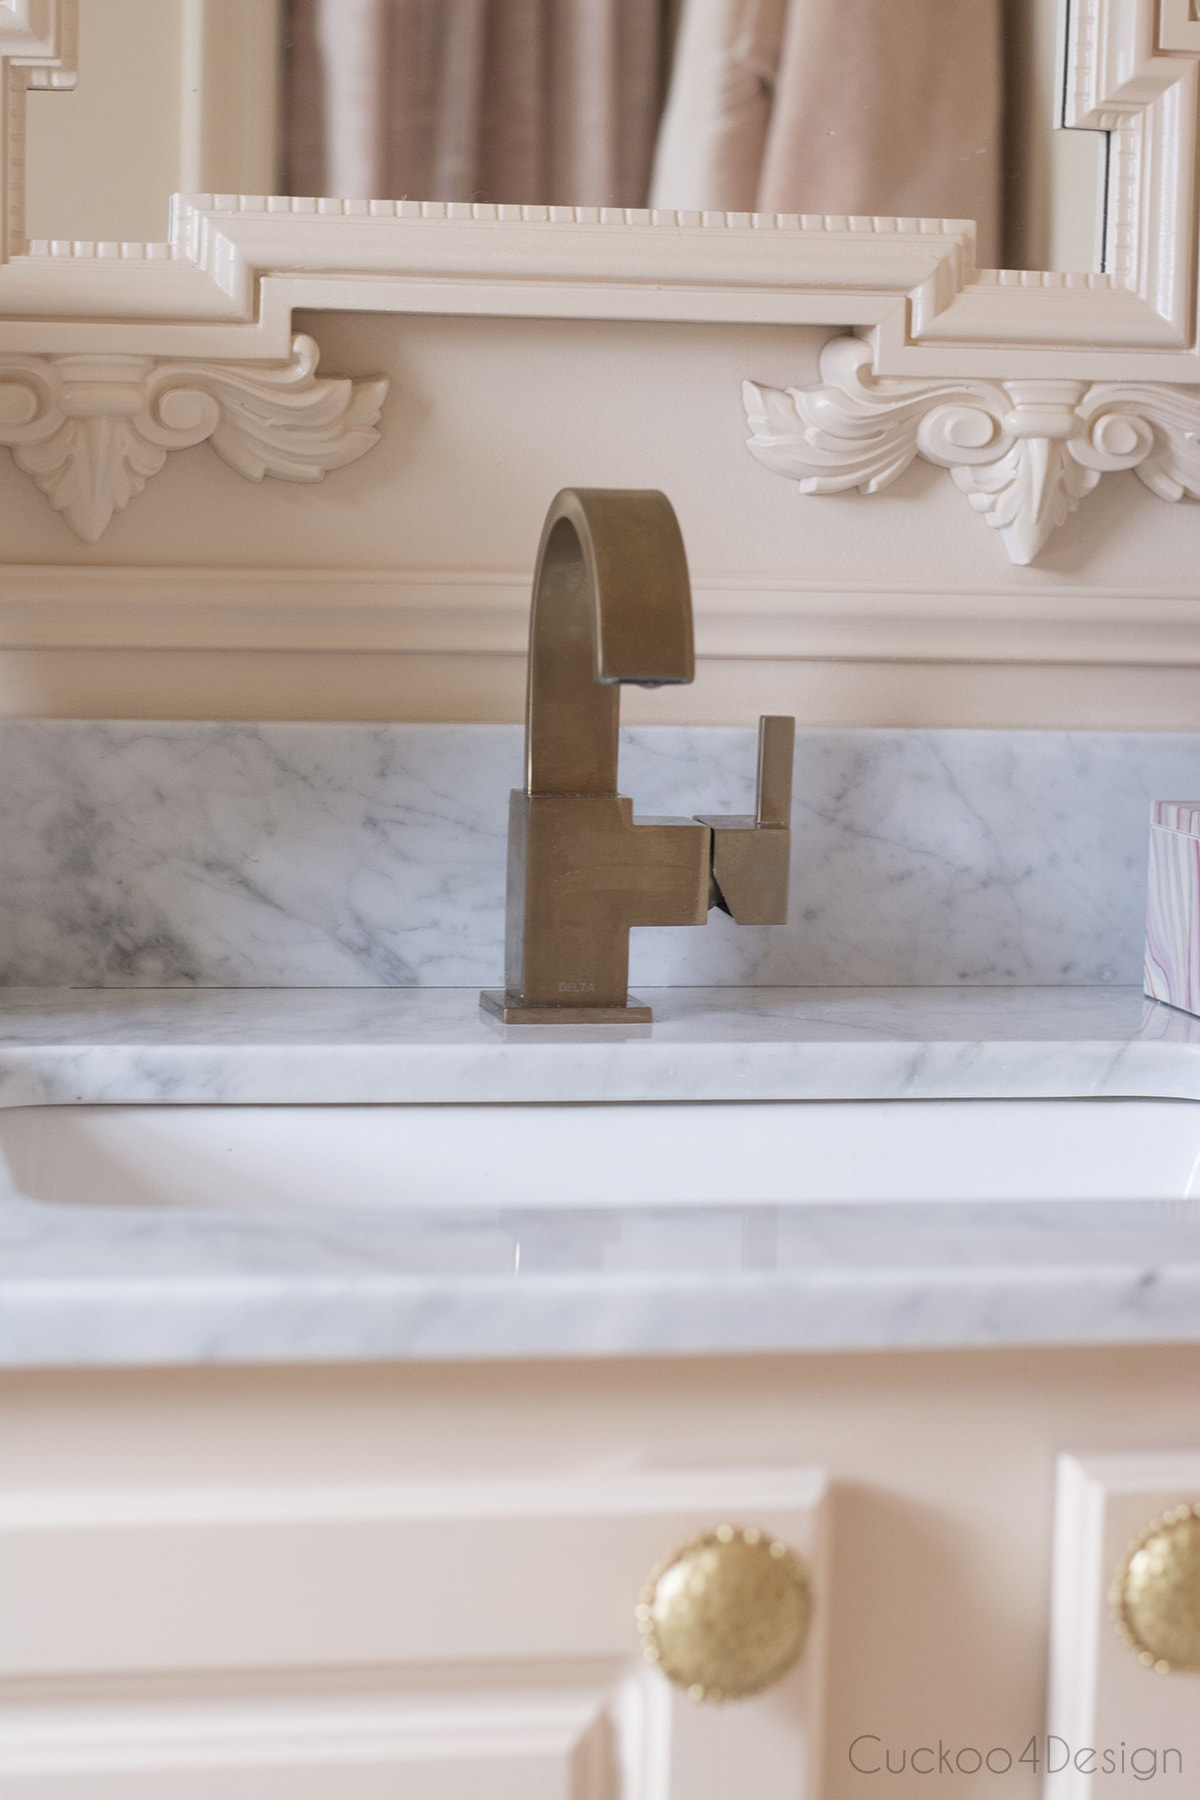 brass faucet in blush budget bathroom remodel